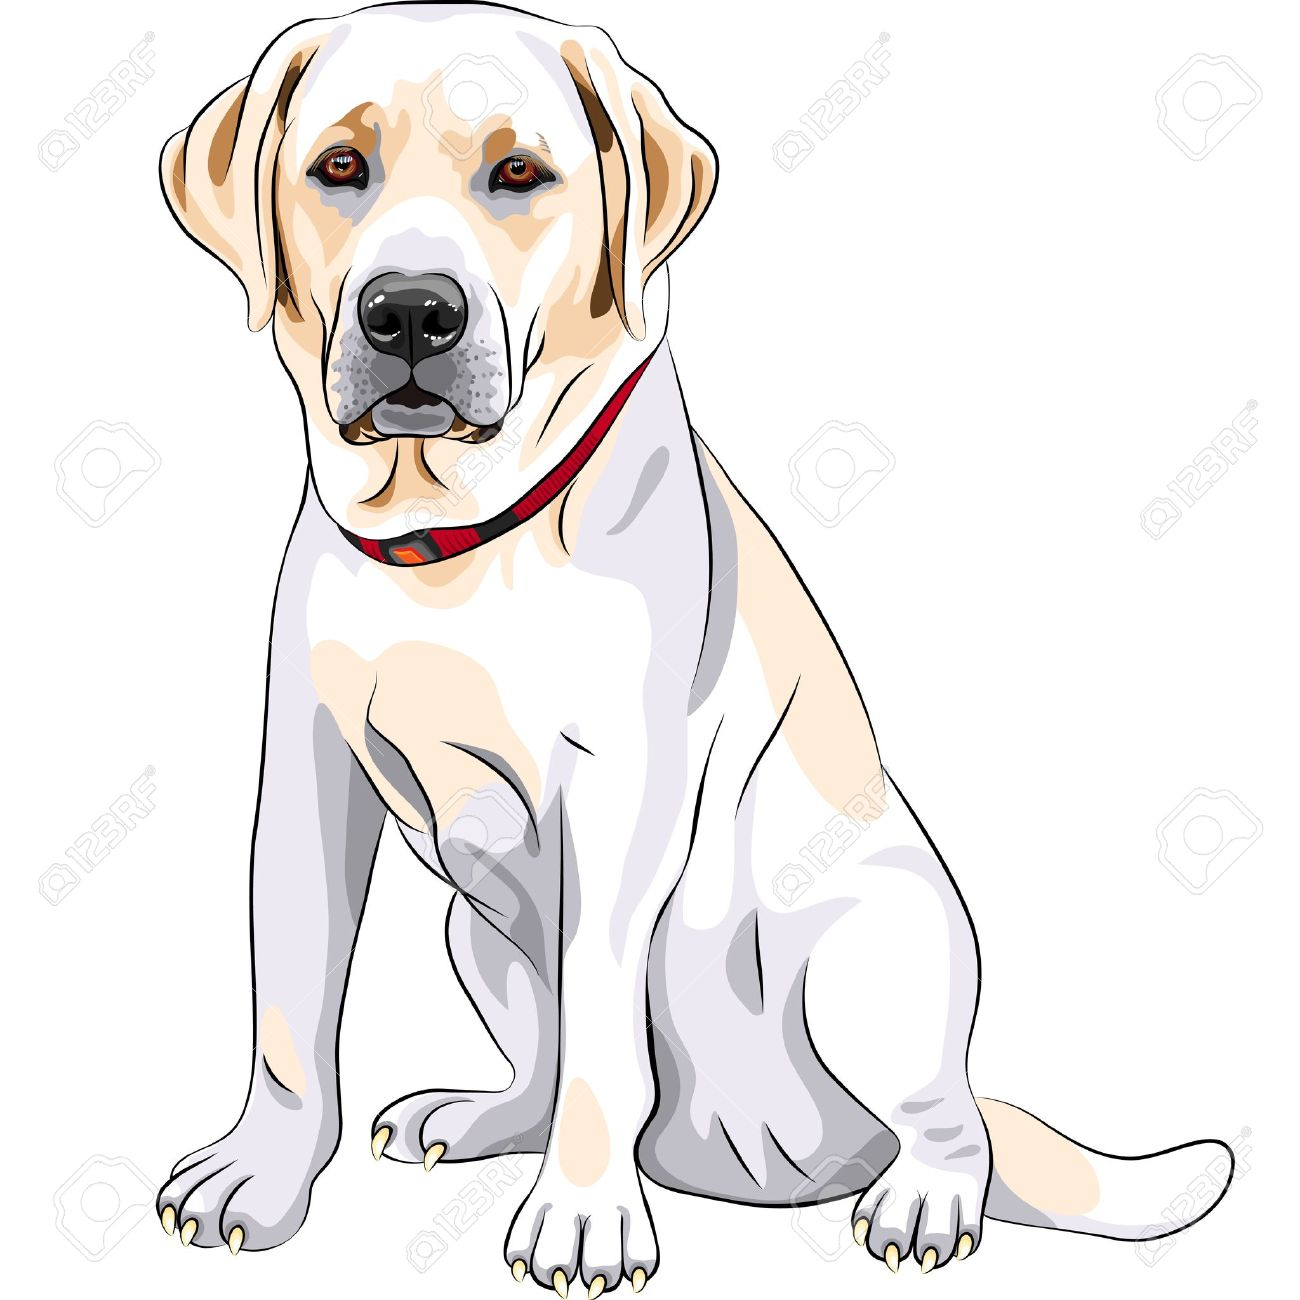 Labrador clipart #11, Download drawings